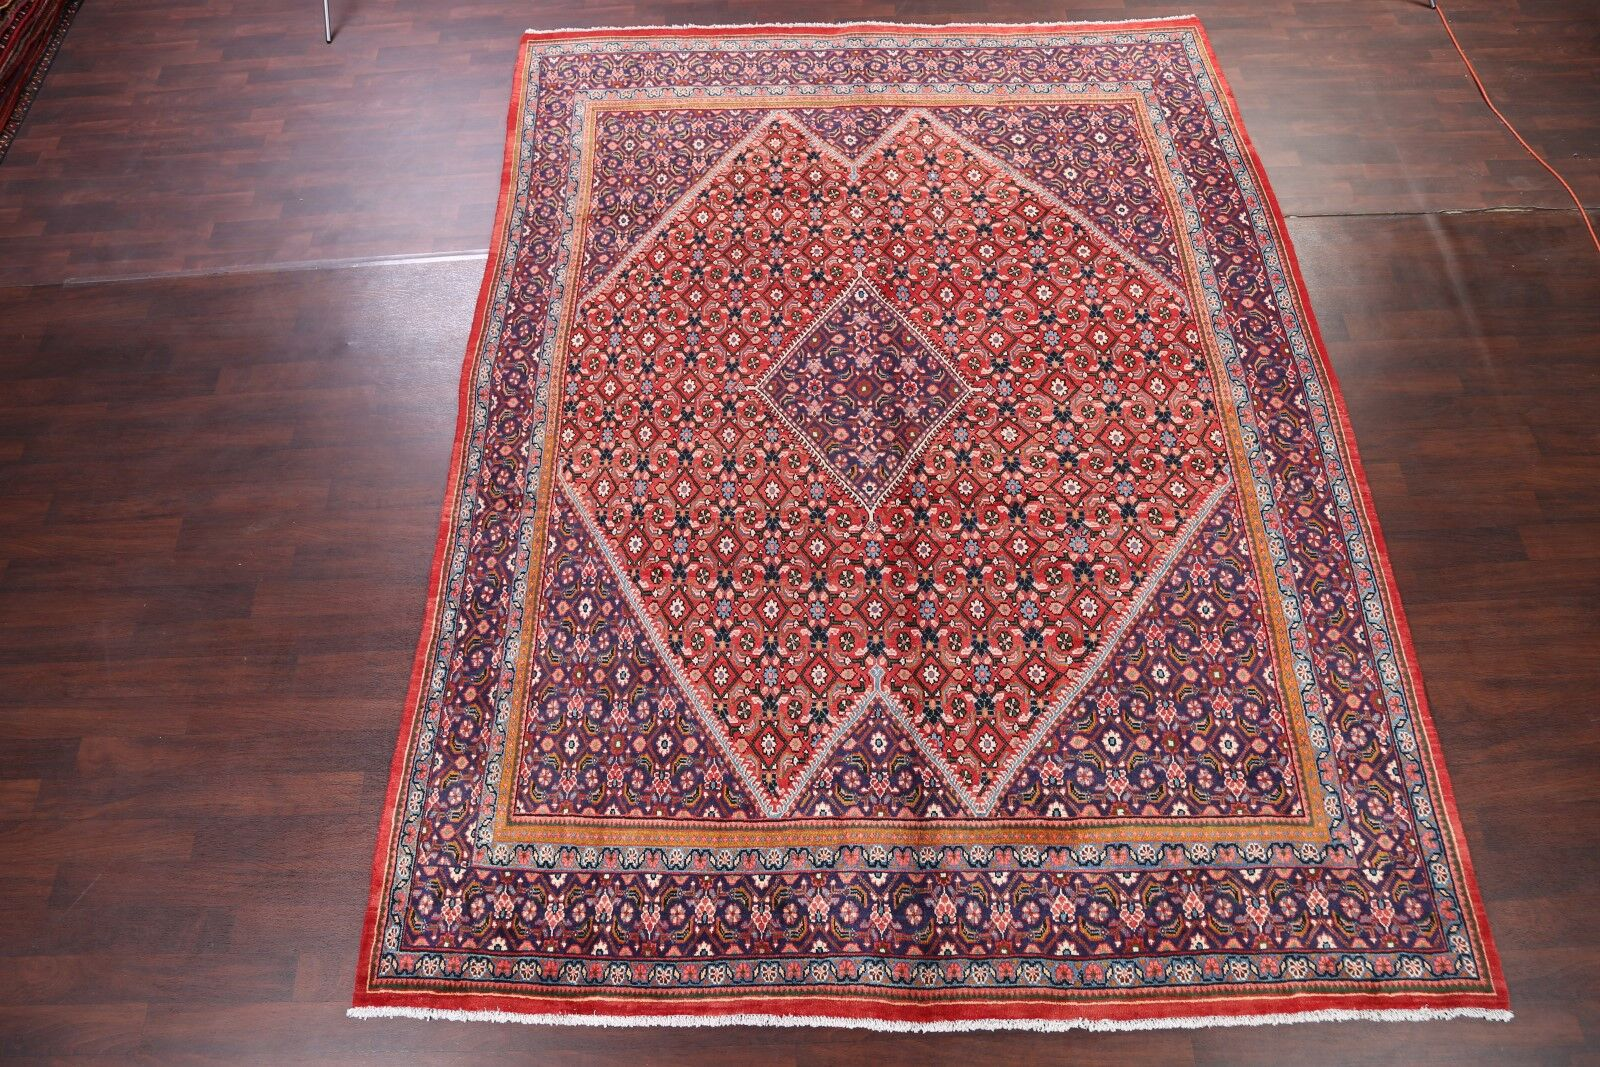 One-of-a-Kind Geometric Mahal Sarouk Vintage Persian Hand-Knotted 9'9